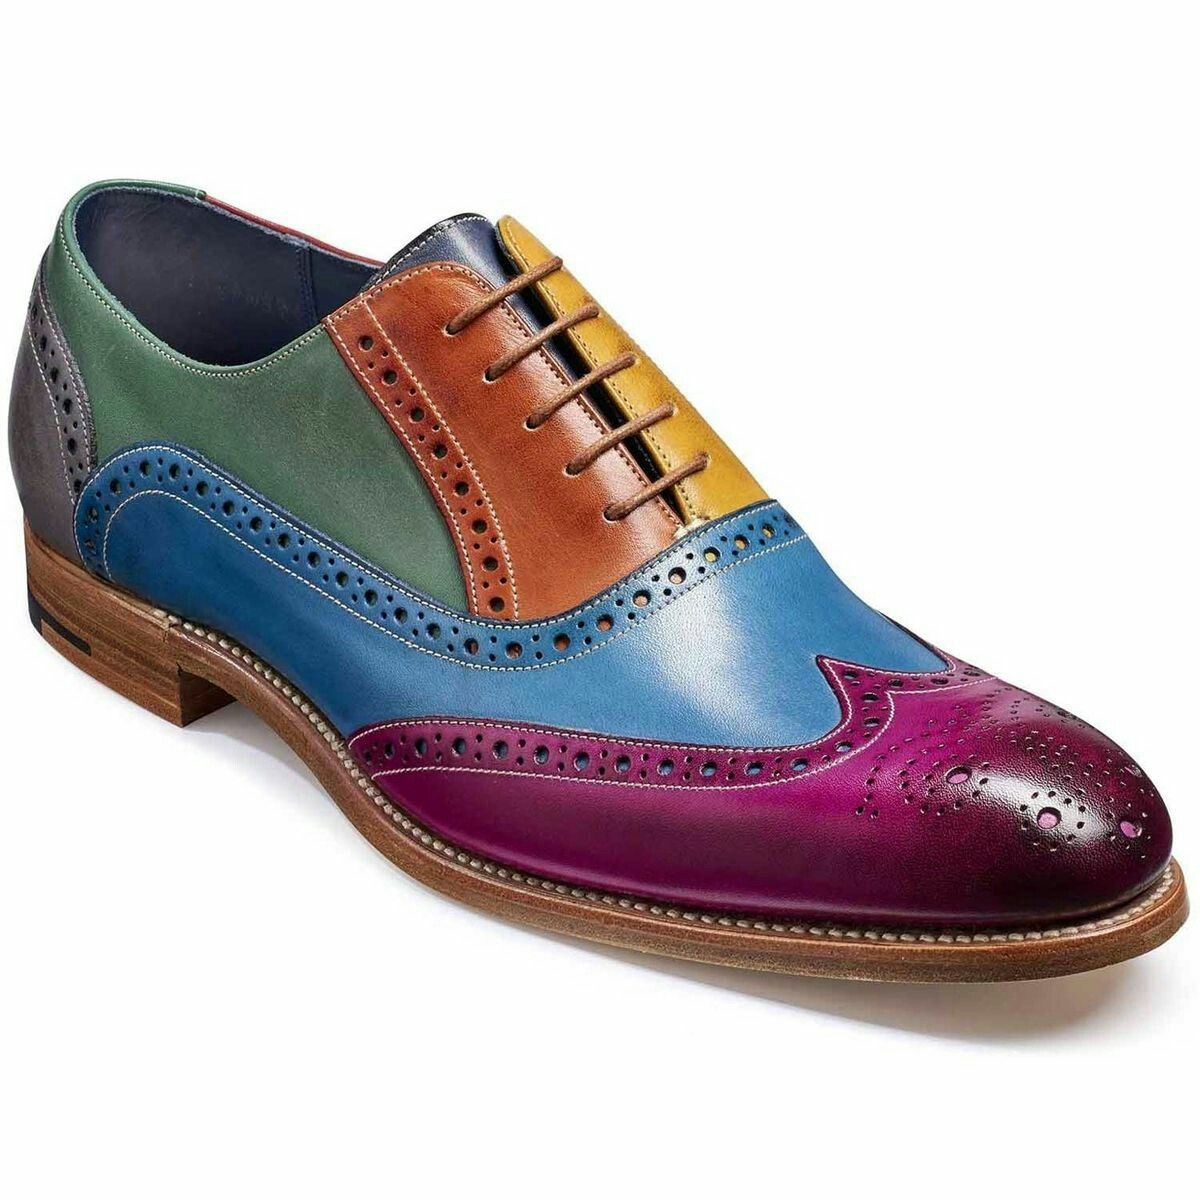 bfd0d33fb86e6 Men's Handmade Multi Color Leather shoes,Wingtip Multi Color dress ...